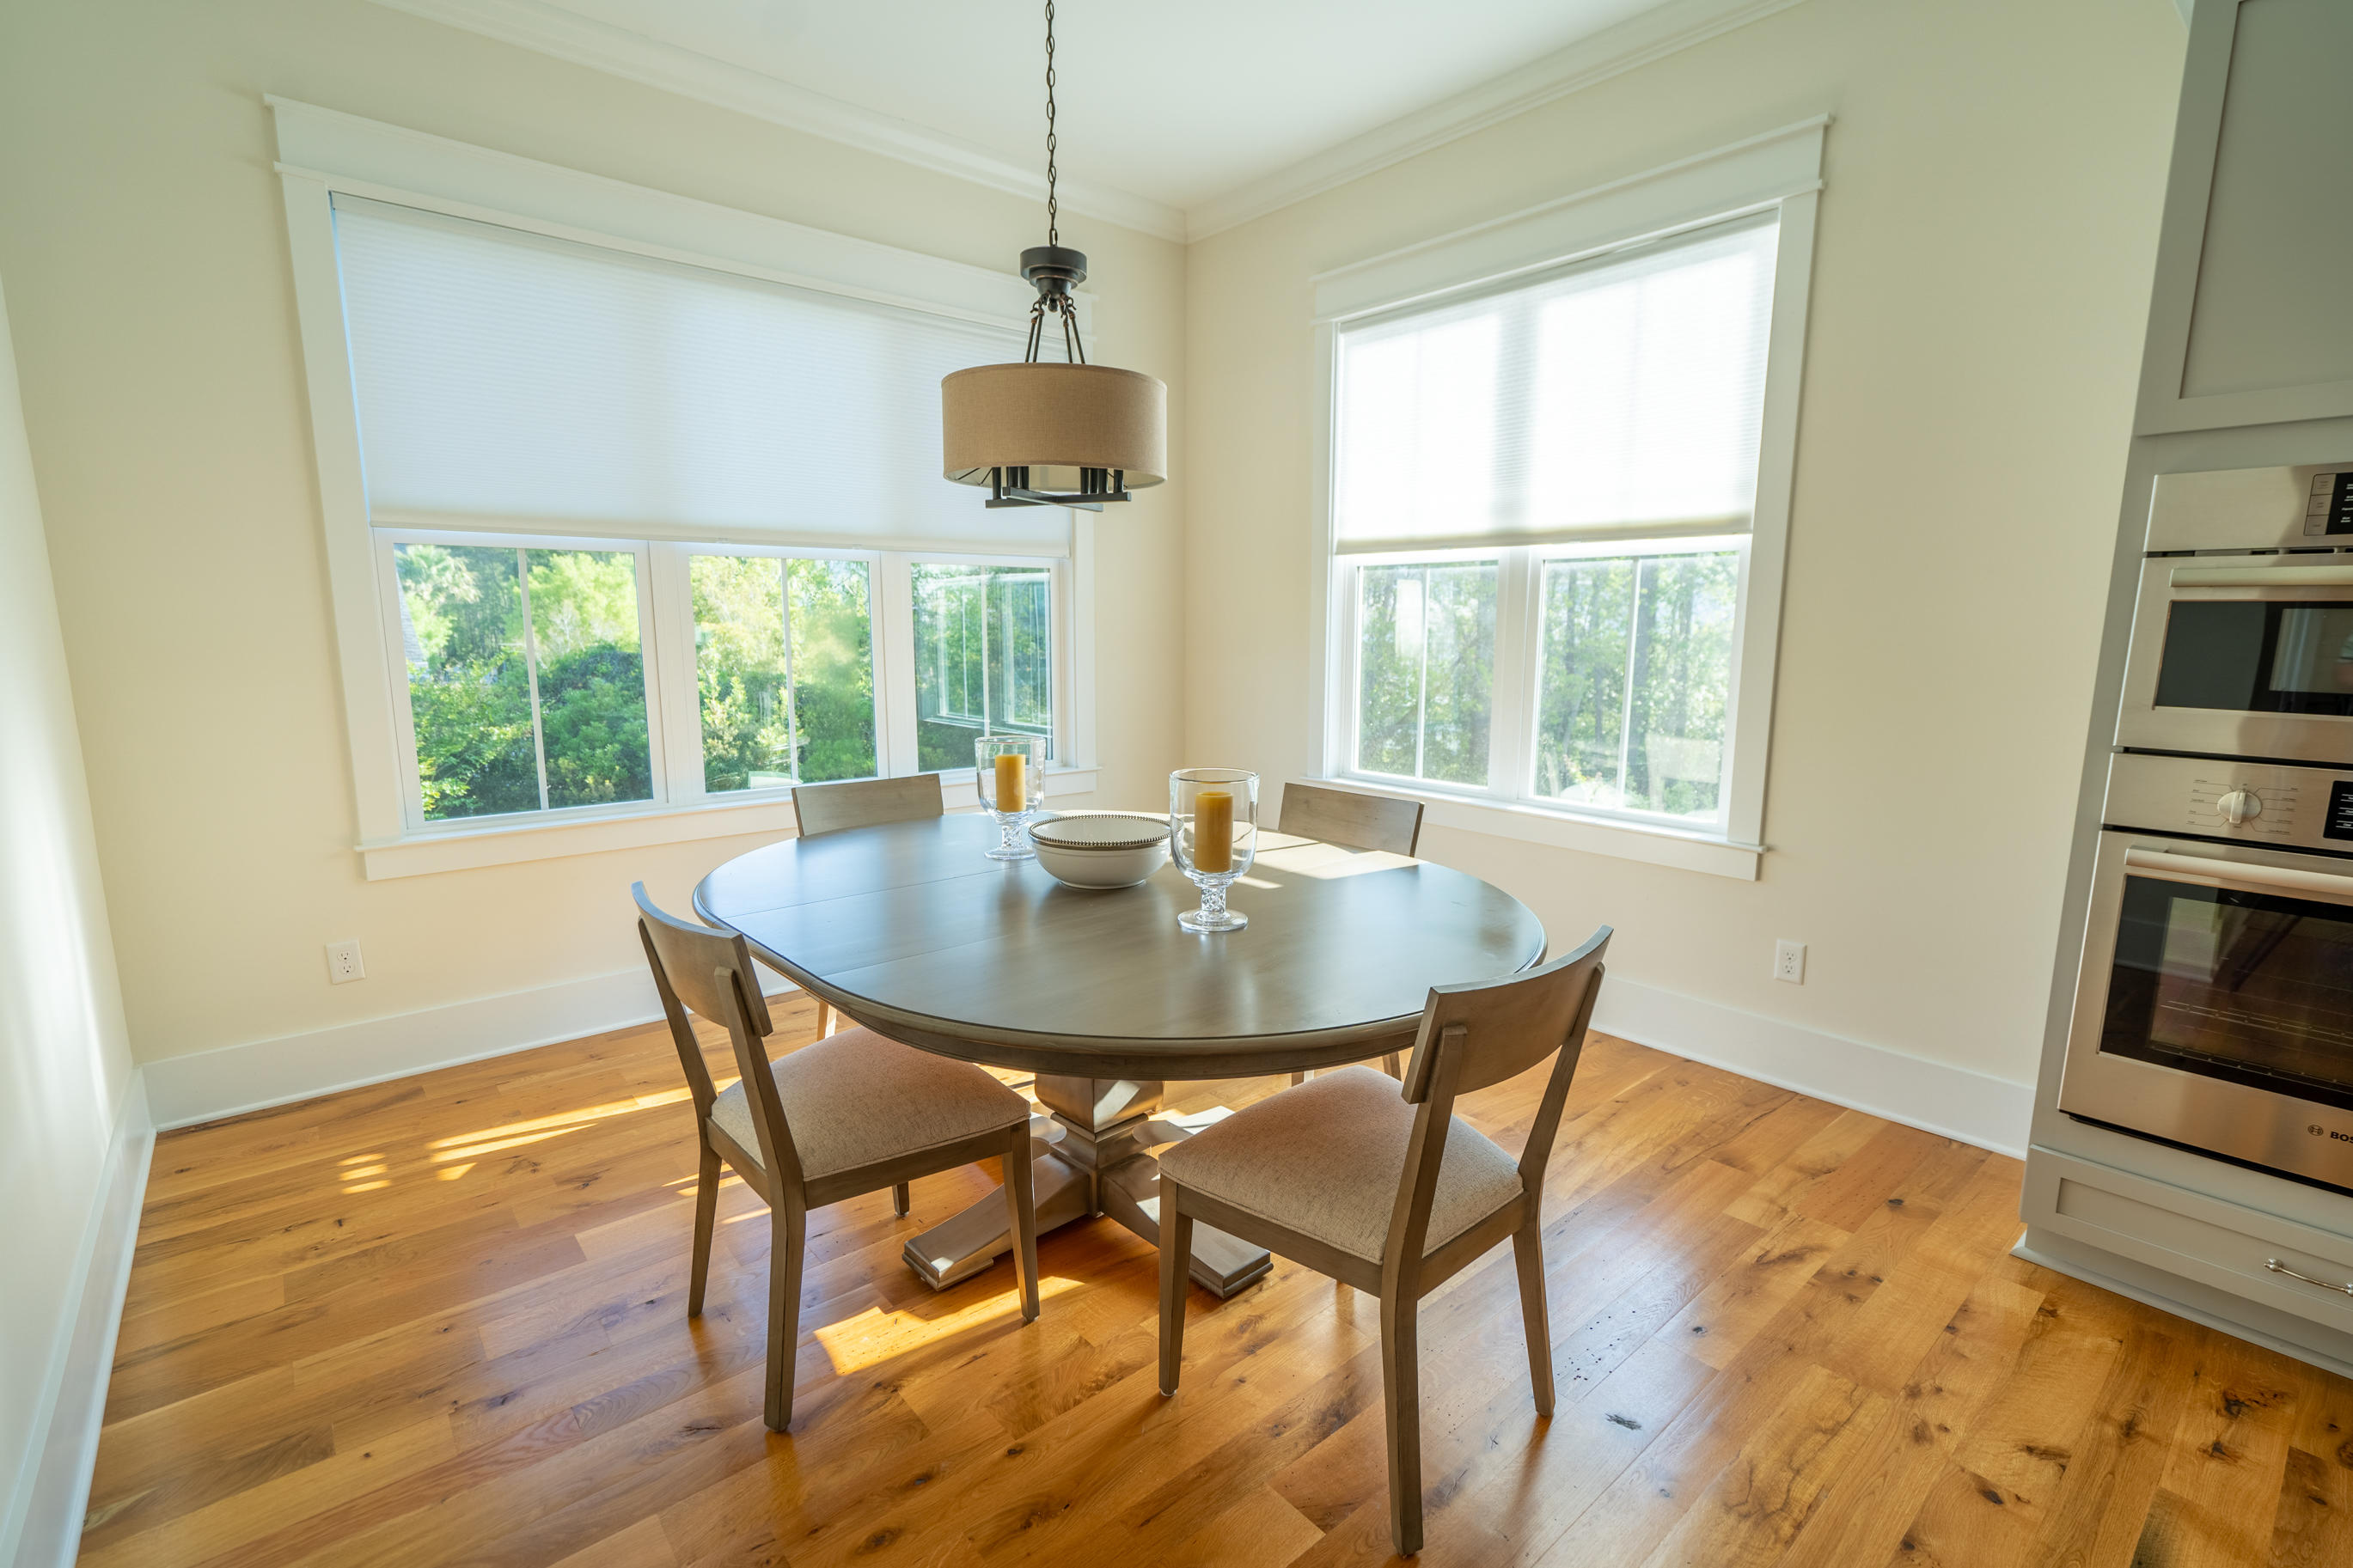 Rivertowne On The Wando Homes For Sale - 2608 Alderly, Mount Pleasant, SC - 11